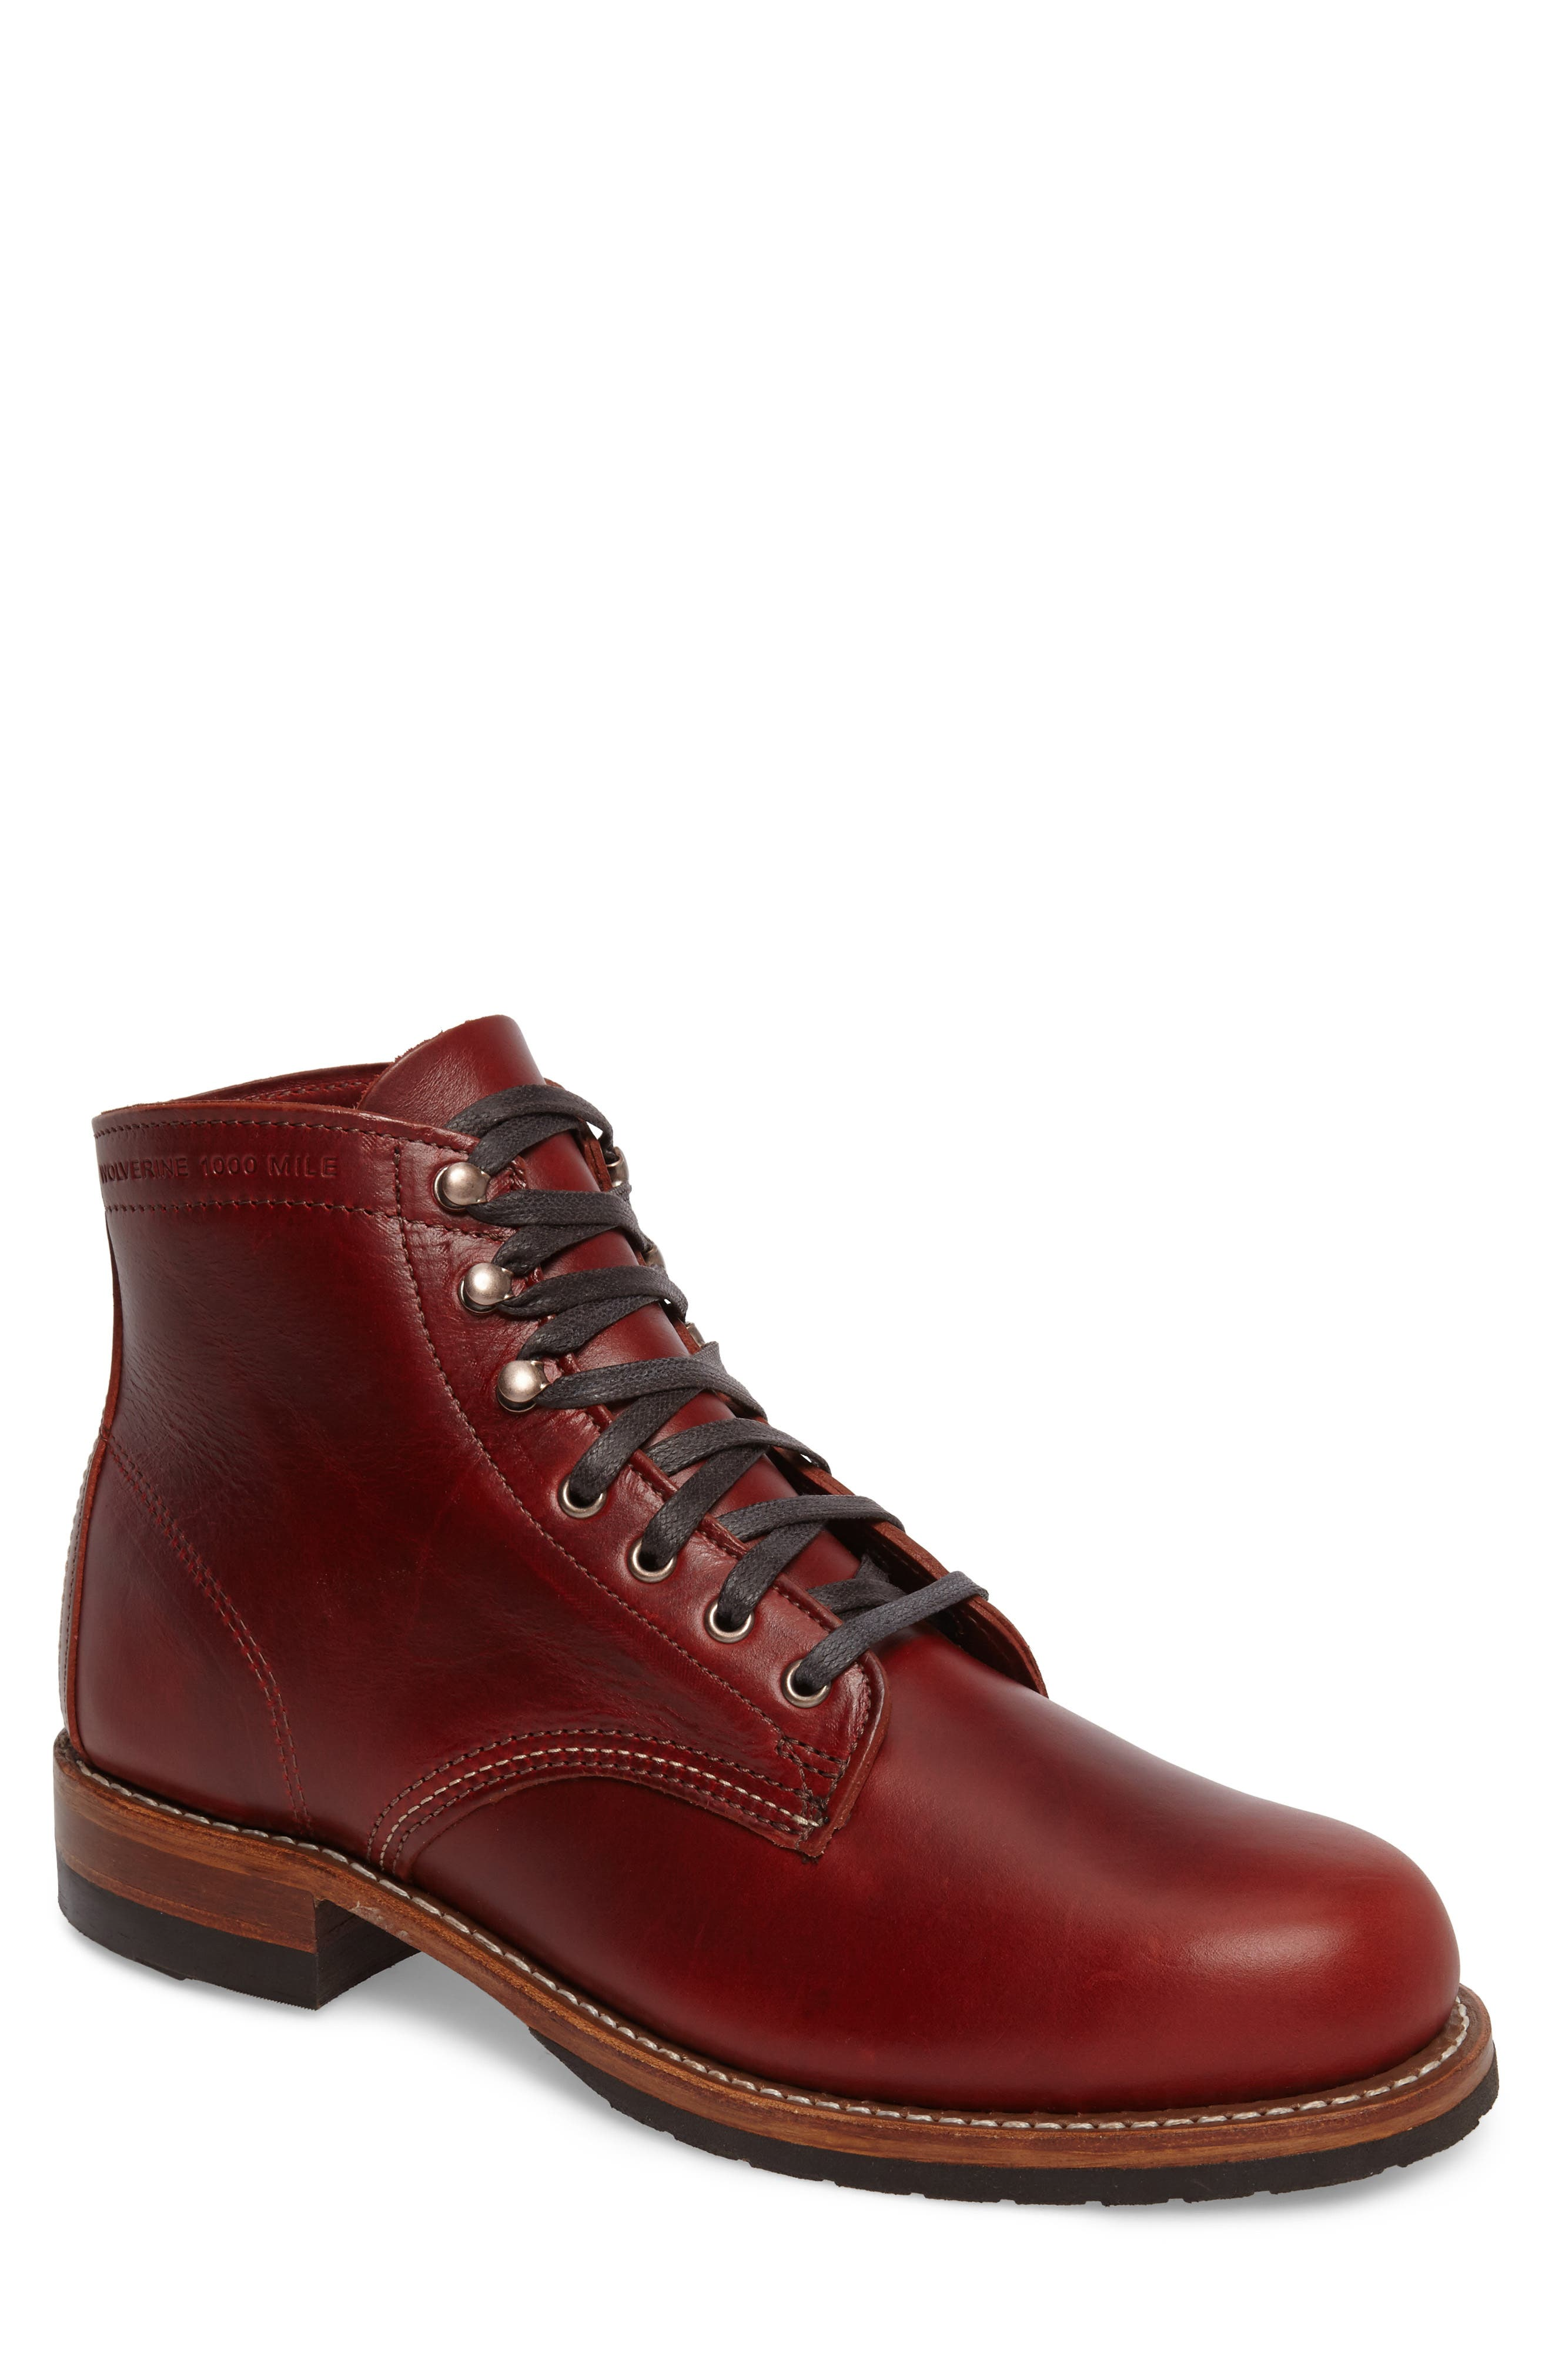 Evans Plain Toe Boot,                             Main thumbnail 1, color,                             Red Leather